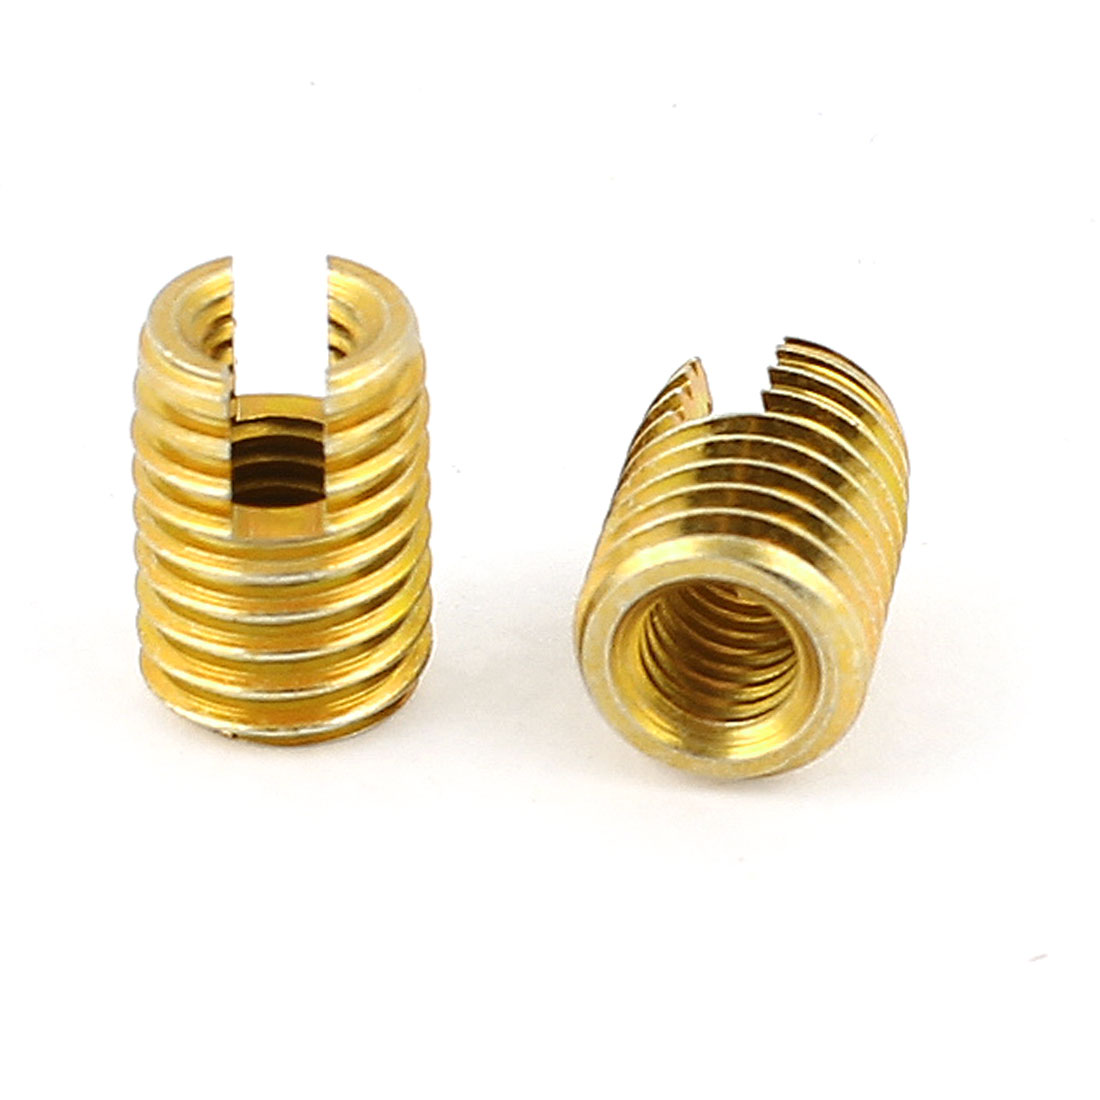 Unique Bargains Replacement Brass Tone 14mmx10mmx5mm Self Tapping Threaded Inserts 2Pcs